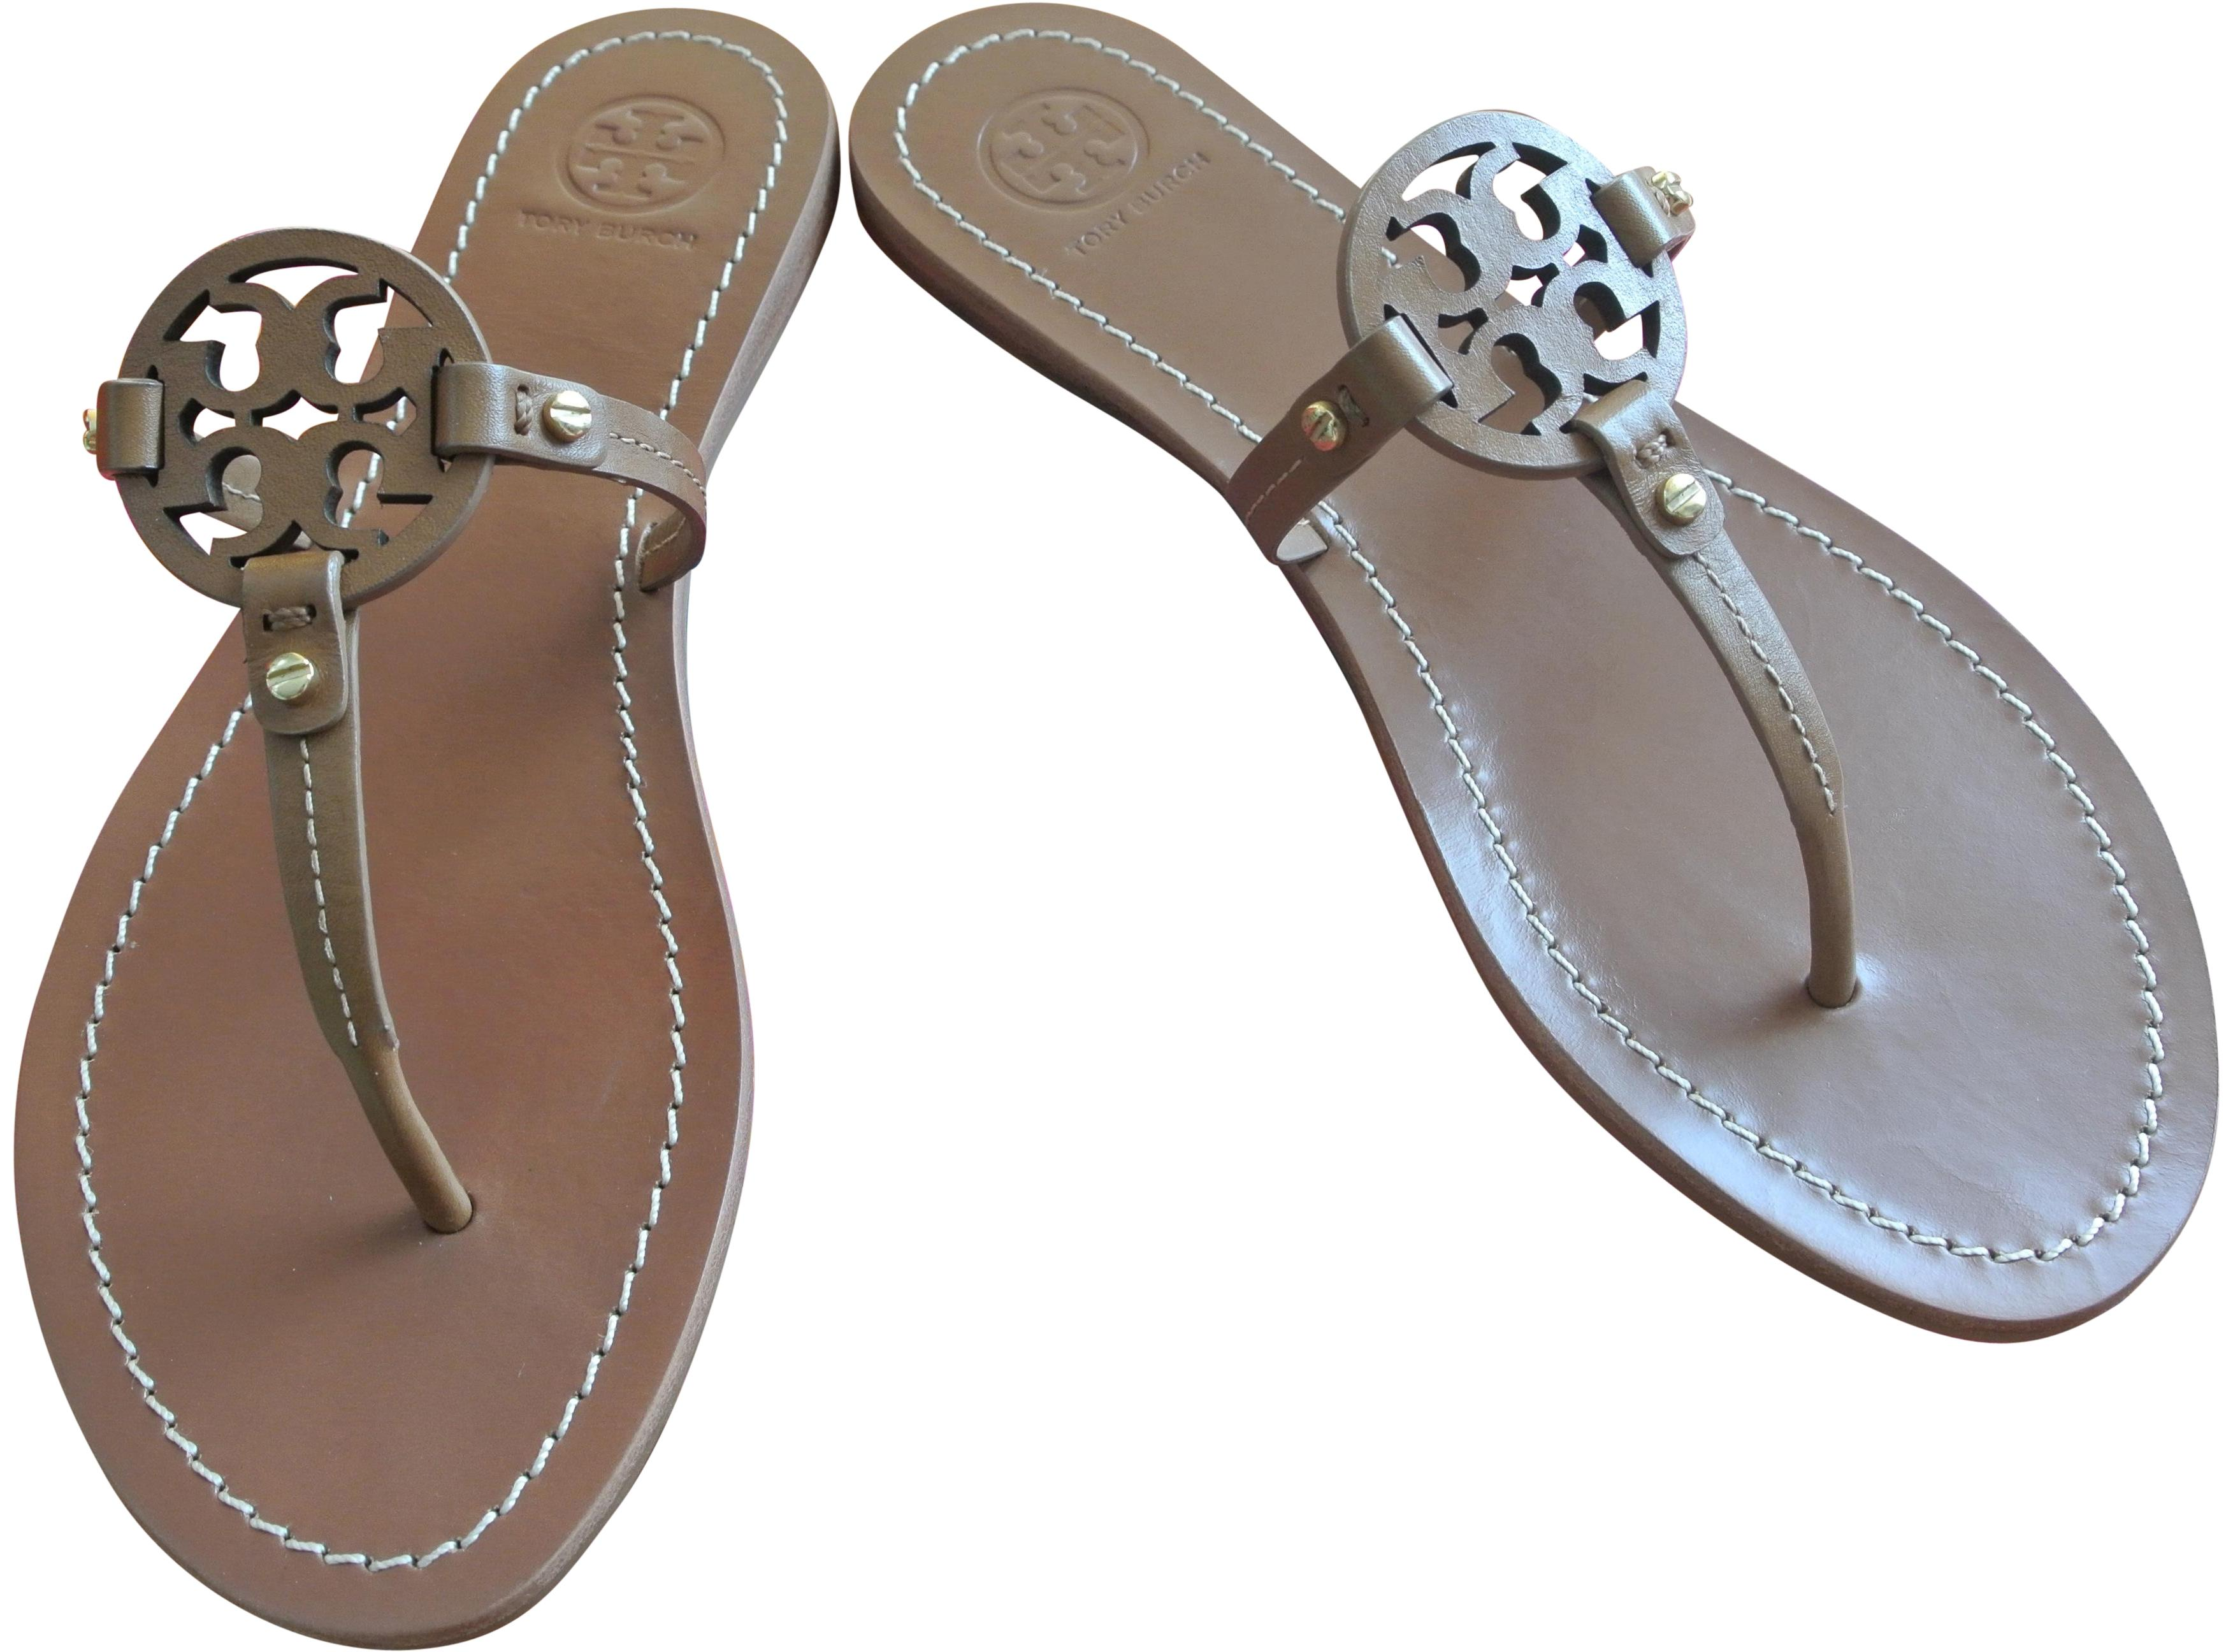 2a4b0223d7b7 tory-burch-brown-end-of-summer-sale-mini-miller-sandals-size-us -75-regular-m-b-24032078-0-1.jpg